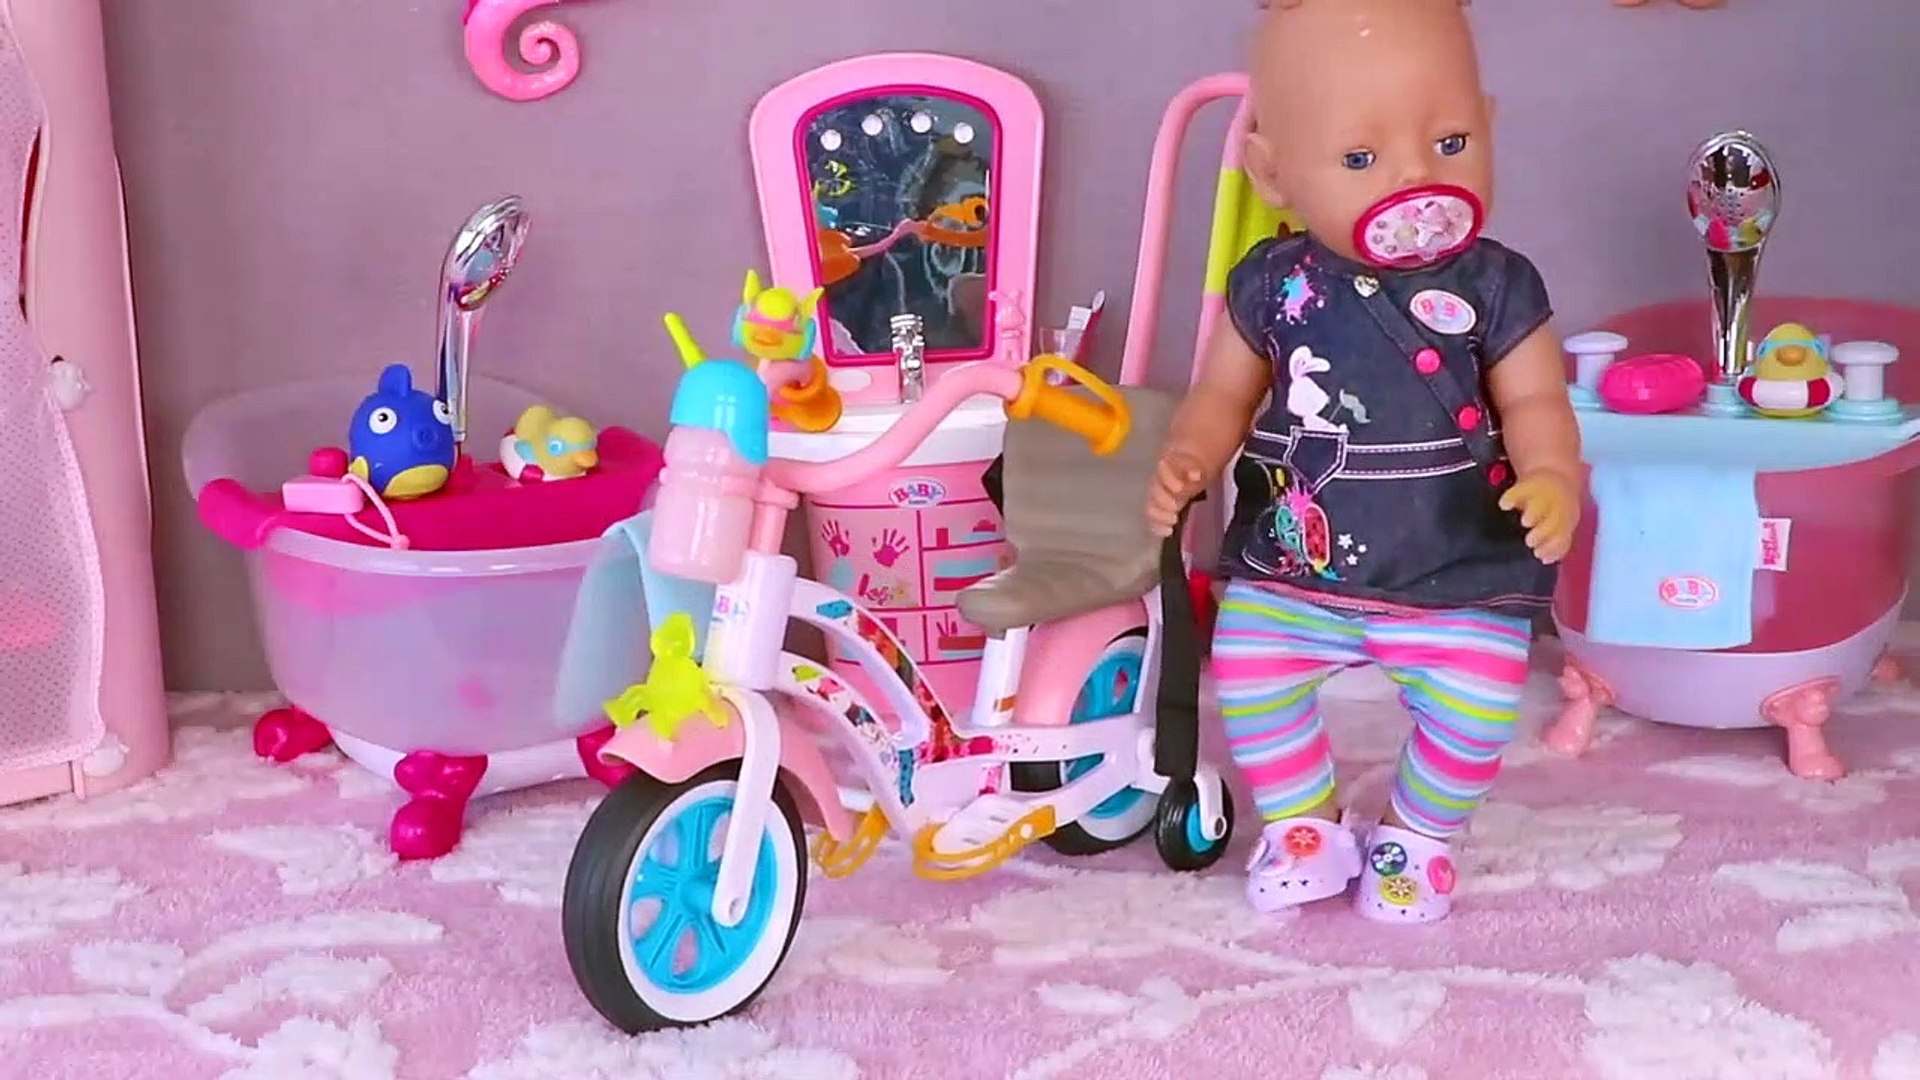 Baby Born Doll Twins Sleeping In Bunk Beds Toys Play Video Dailymotion